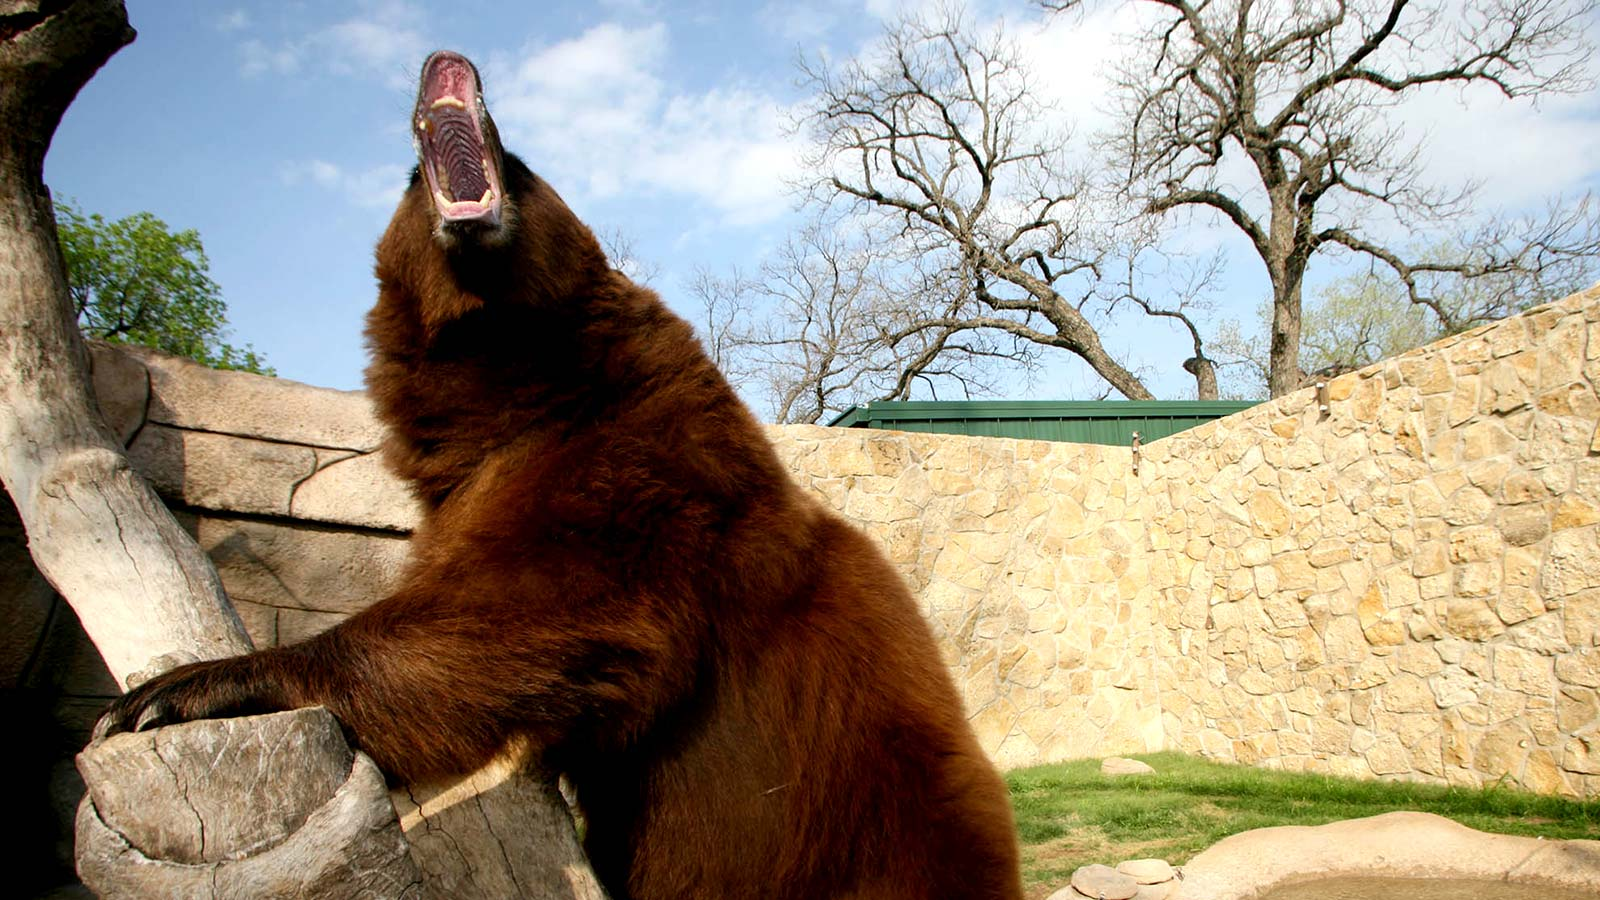 Students voted in 1914 to name the bear the official